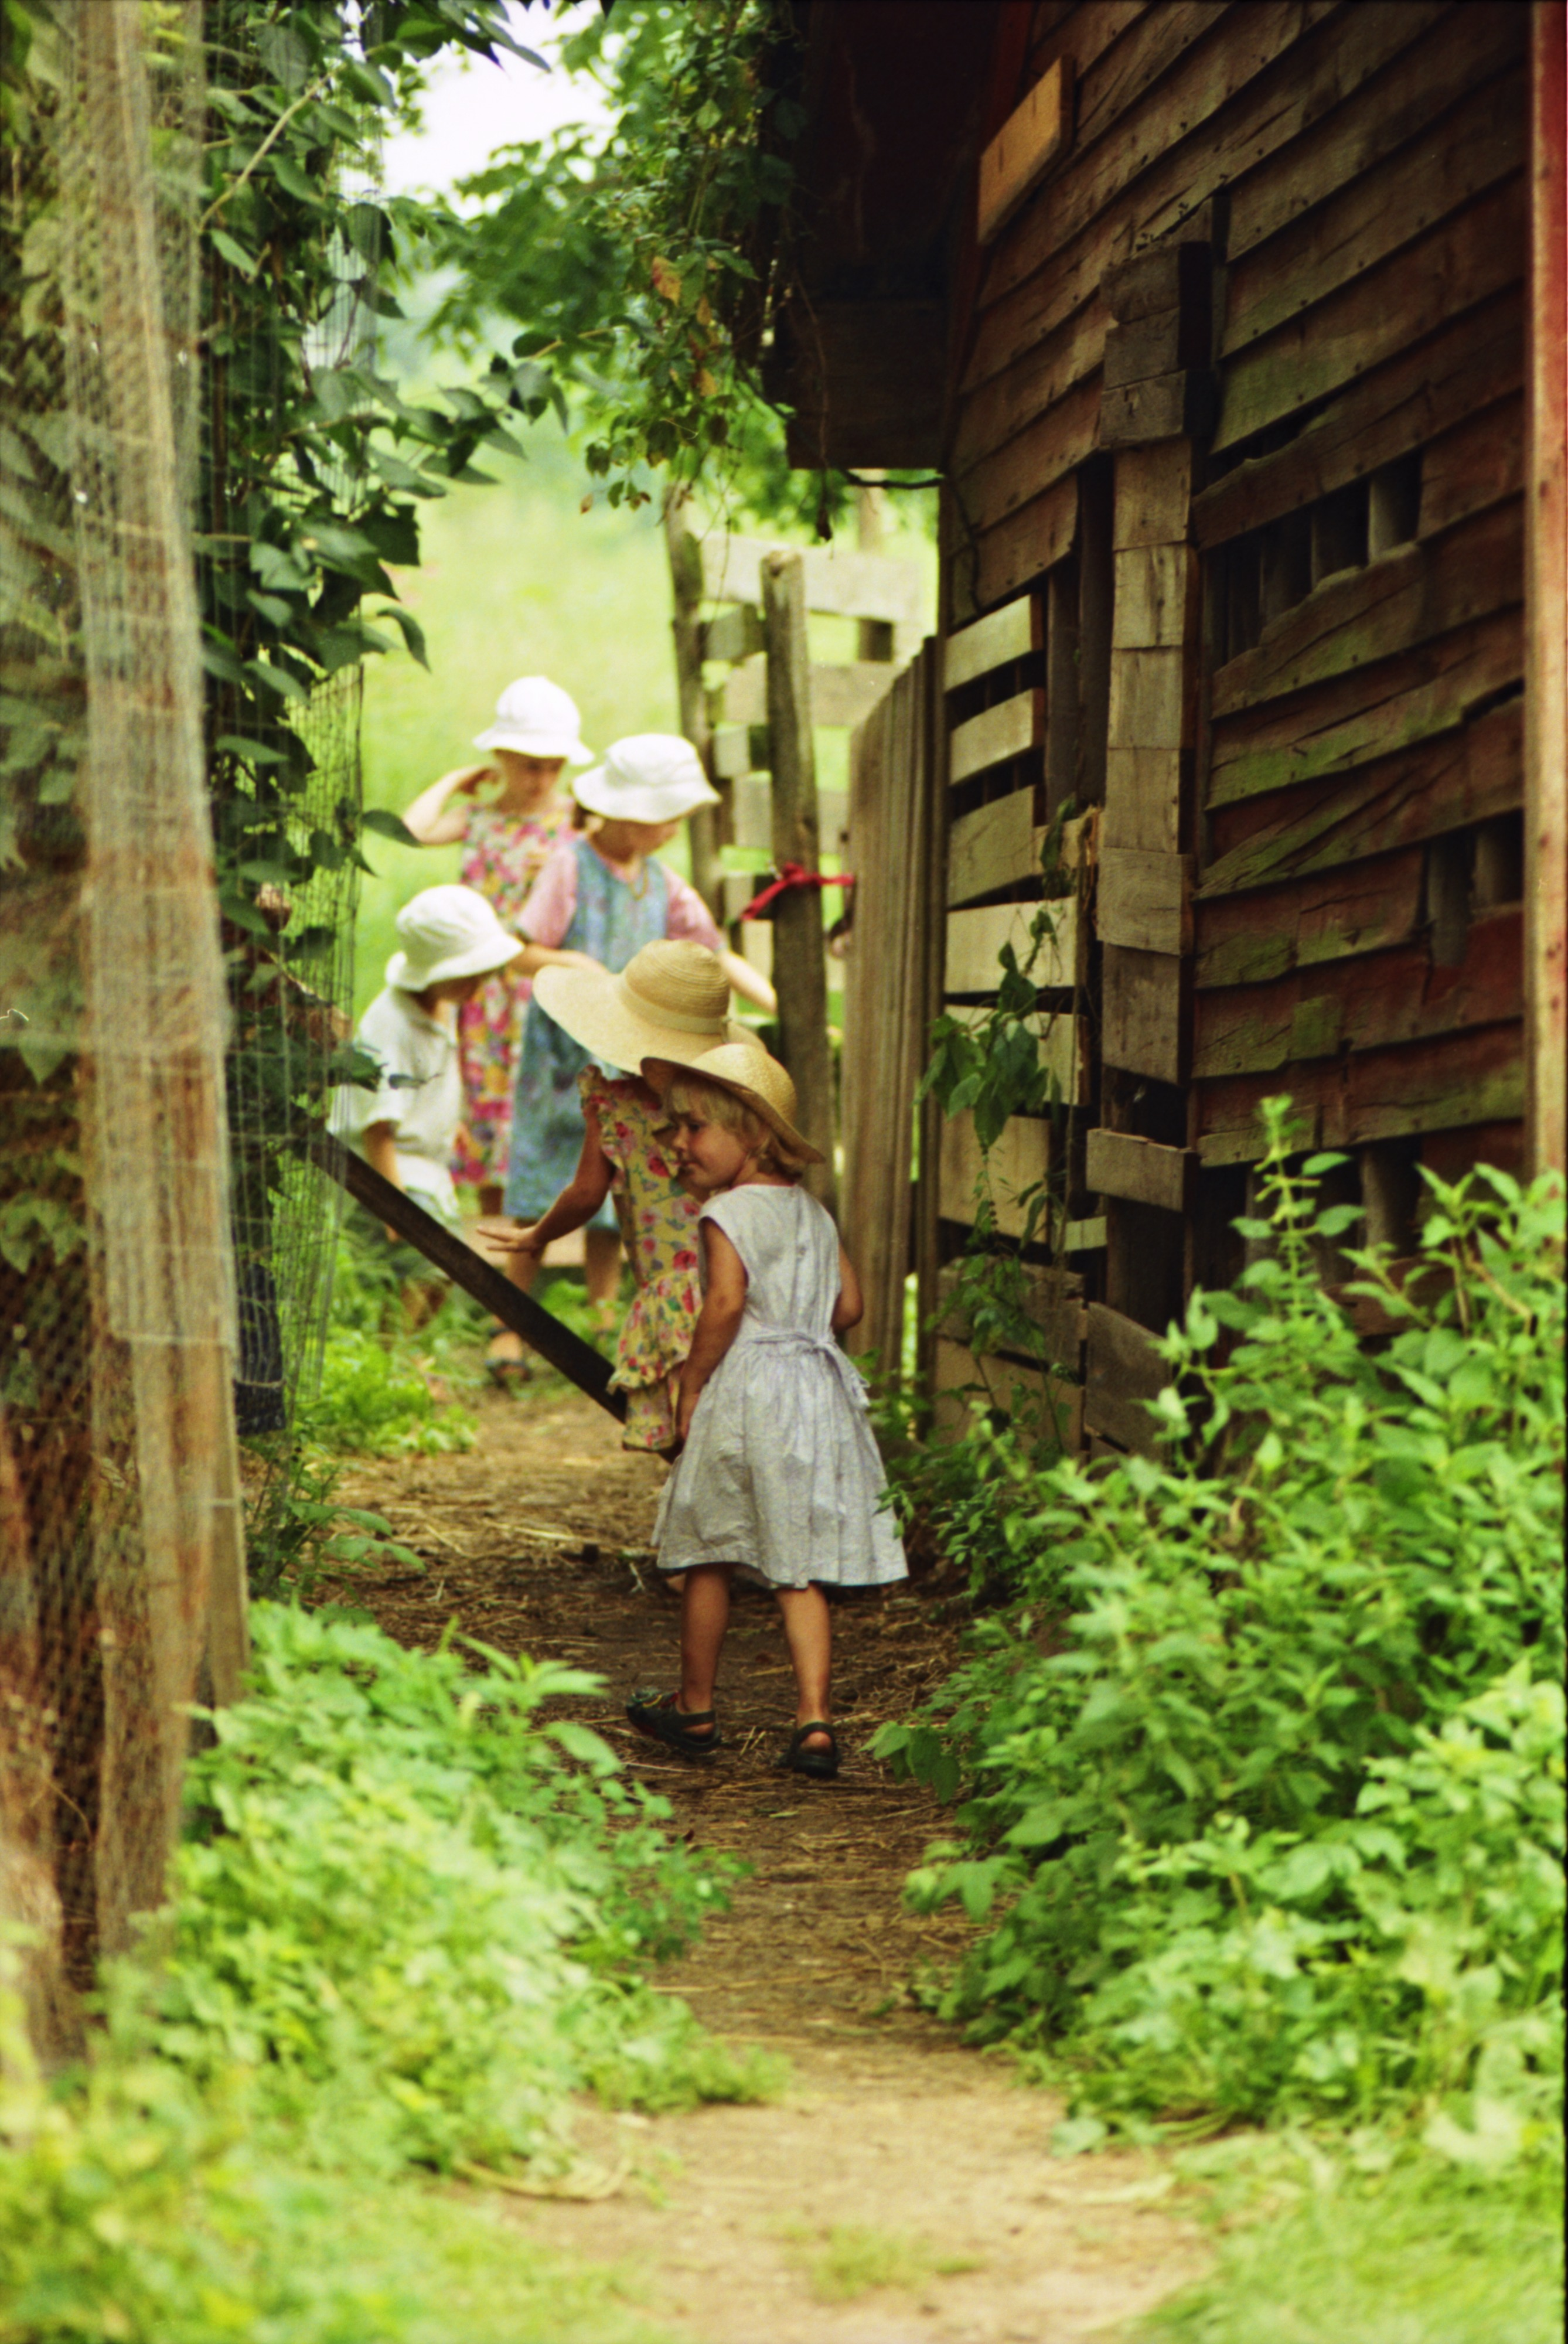 A Visit to the Community Farm of Ann Arbor, August 1995 image